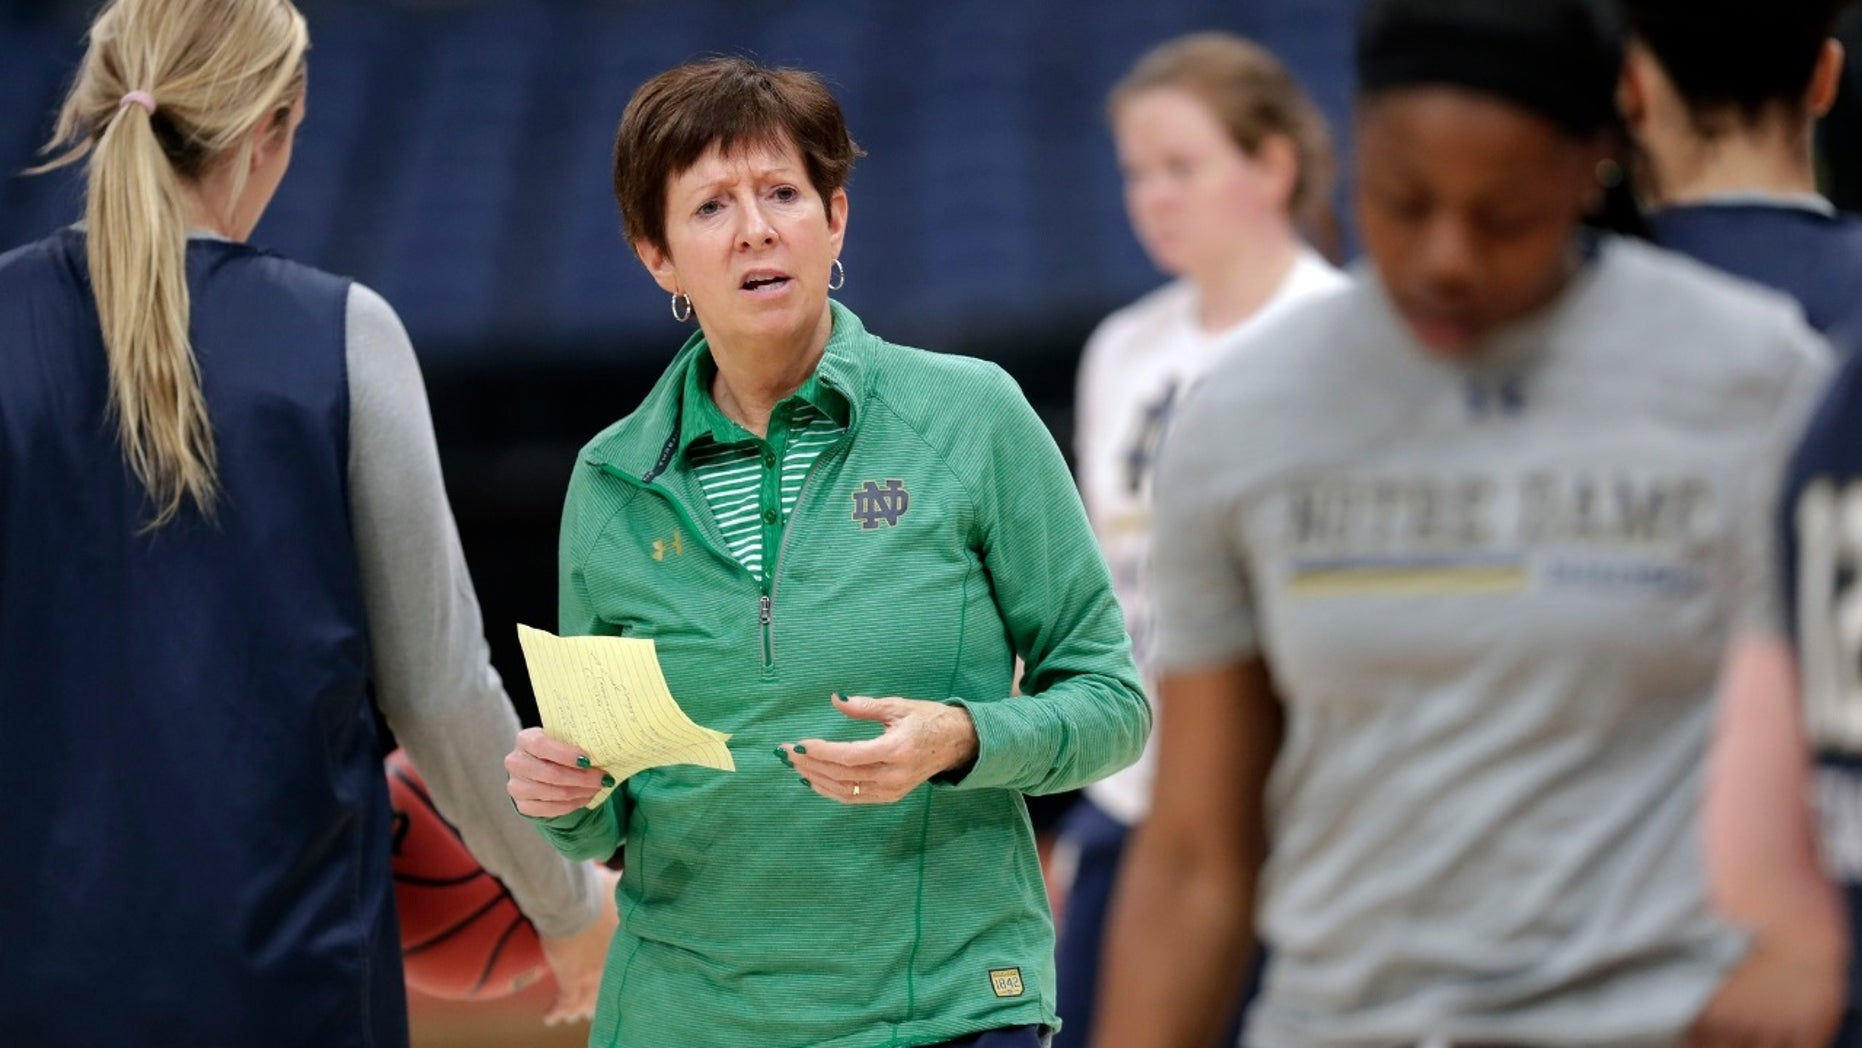 Notre Dame women's basketball team head coach Muffet McGraw explained why she was done hiring men and said there needed to be more opportunity for women.